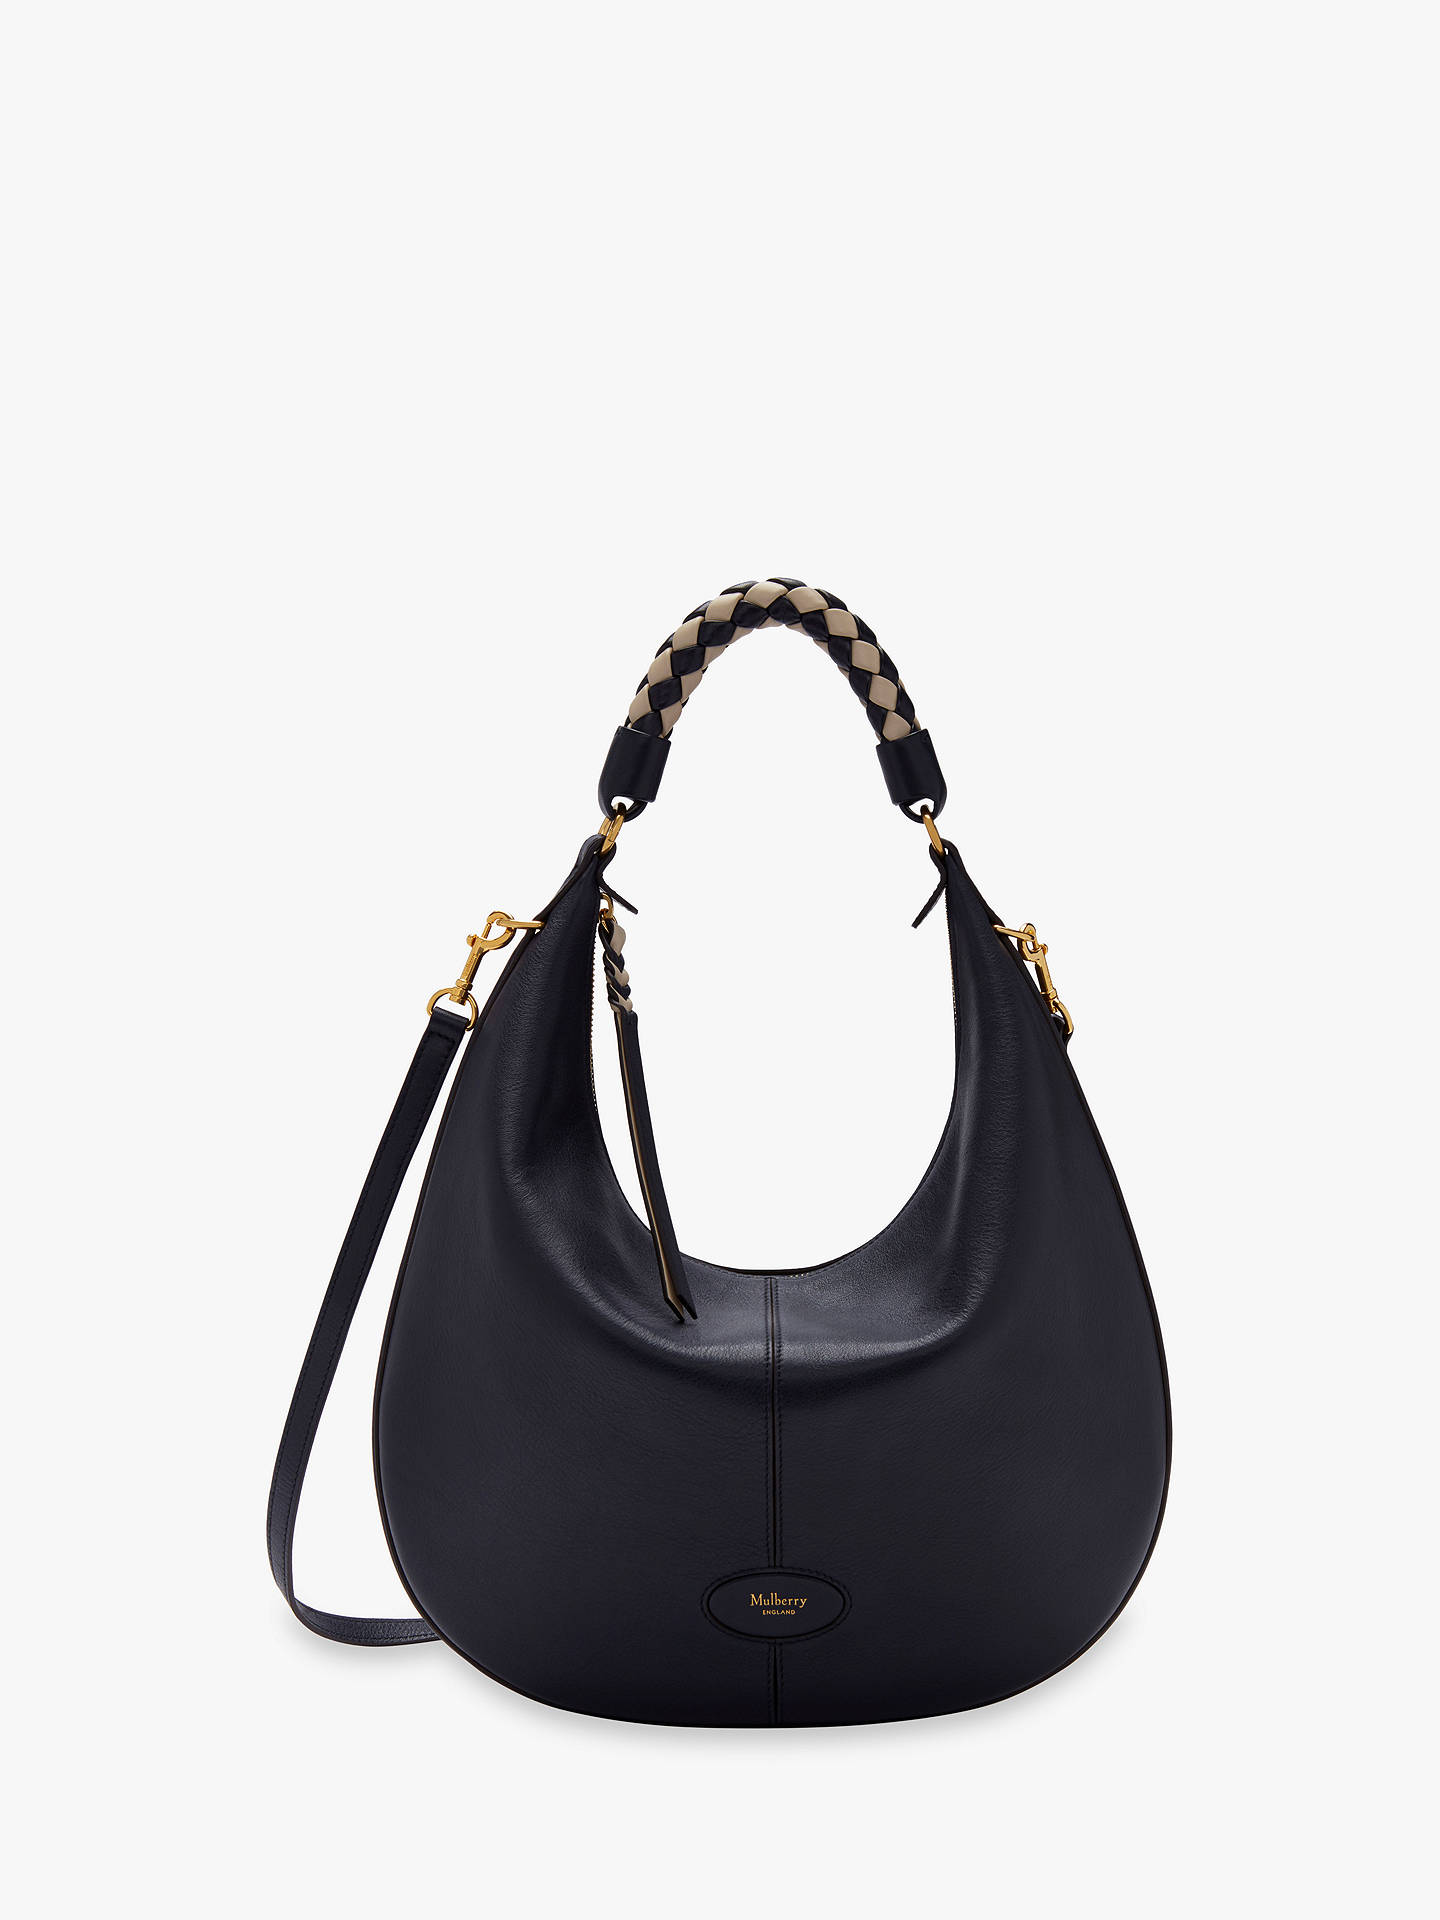 Mulberry Small Selby Silky Calf Leather with Braided Handle Hobo Bag ... 242d35e3db3a6